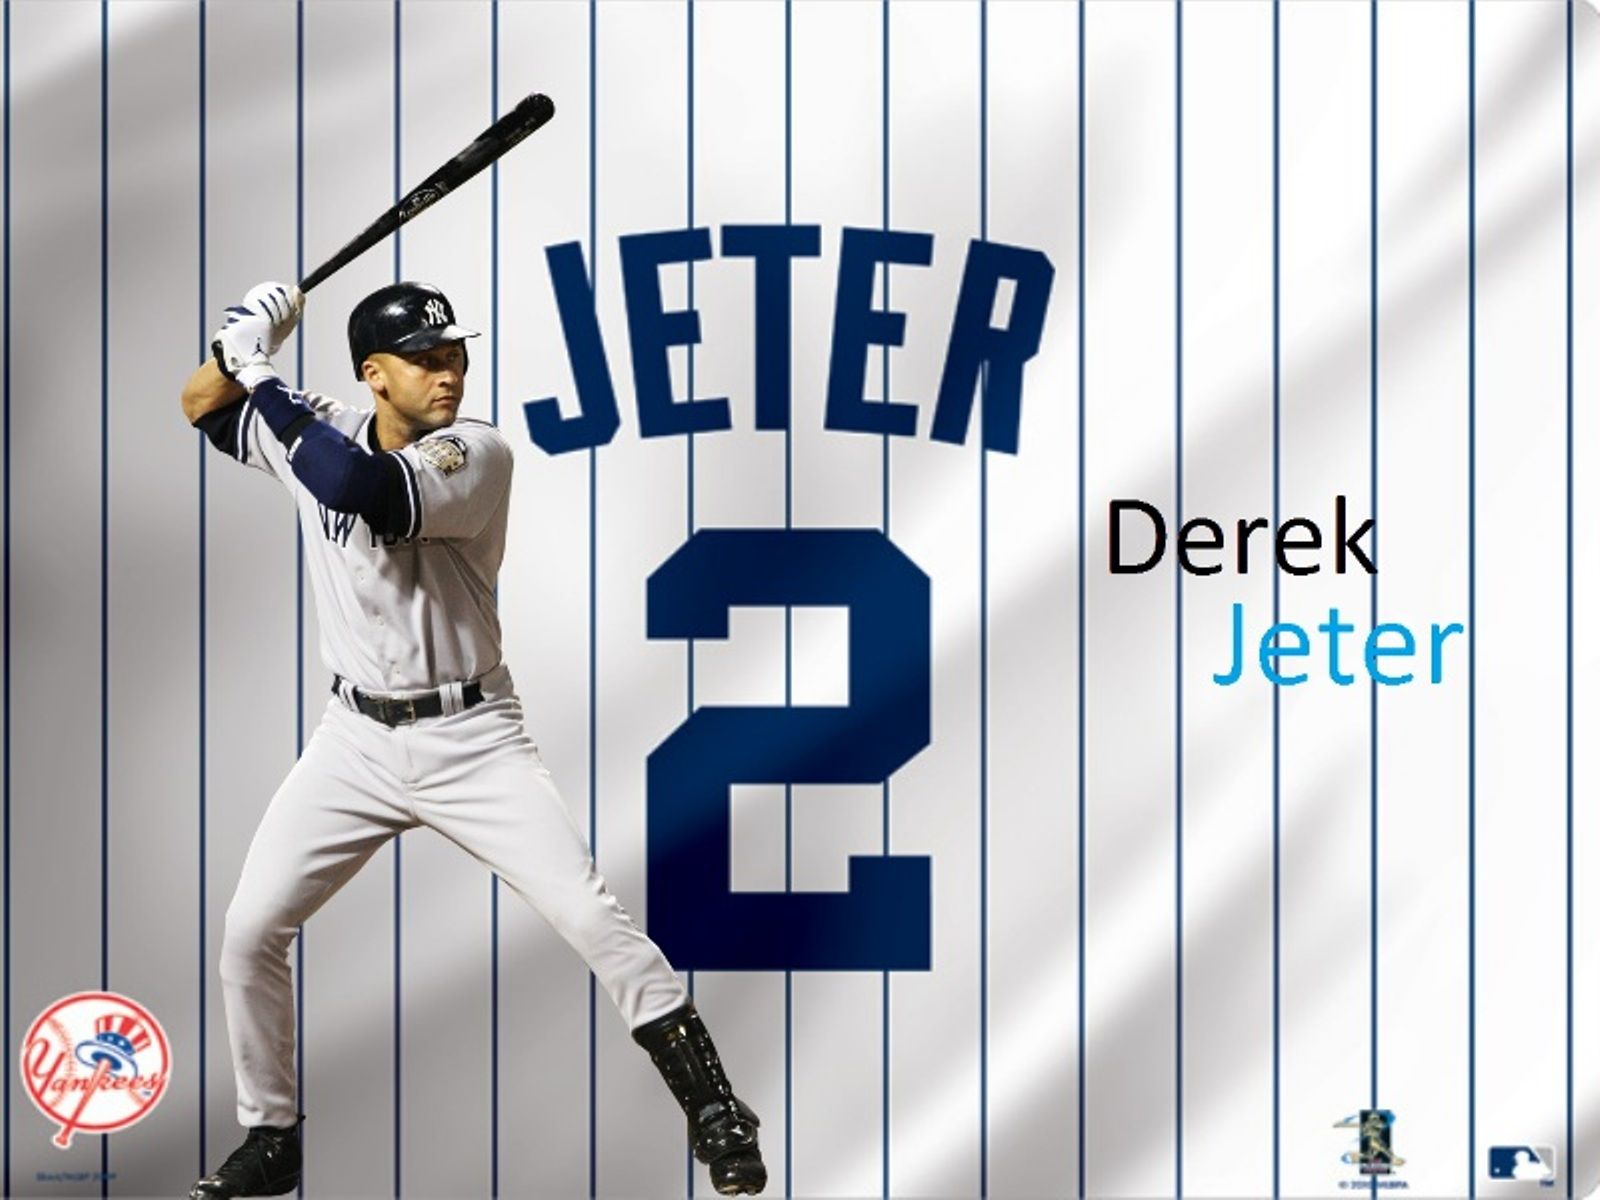 Search Results For Derek Jeter Wallpaper Adorable Wallpapers Find This Pin And More On NY YANKEES